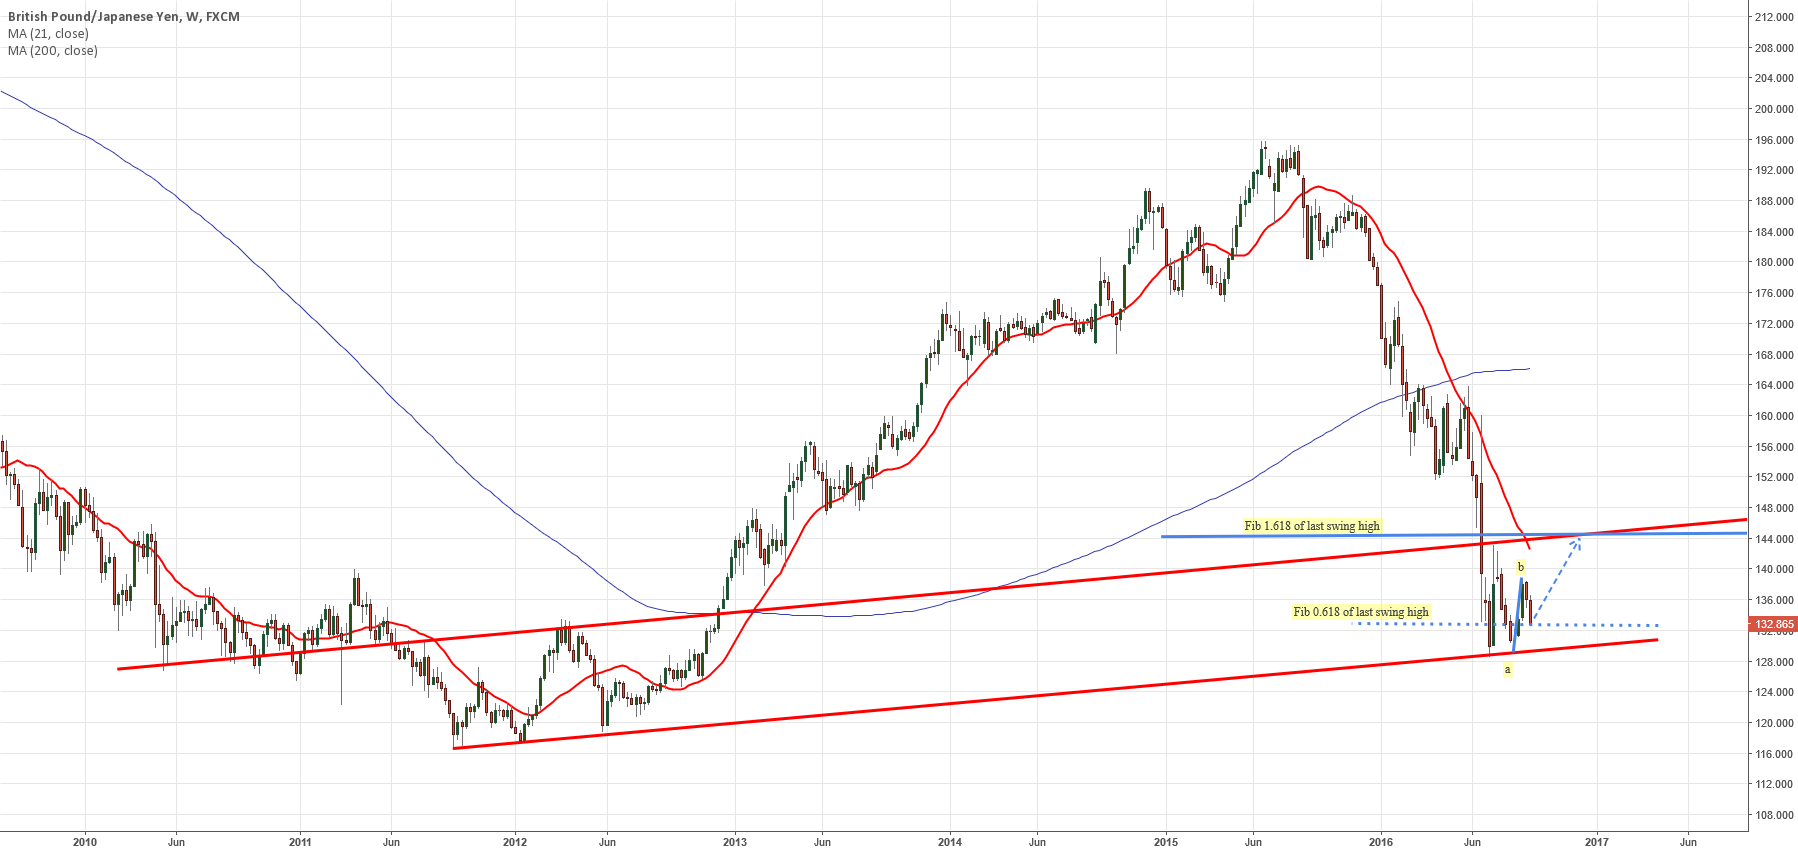 GBPJPY LONG WEEKLY CHART